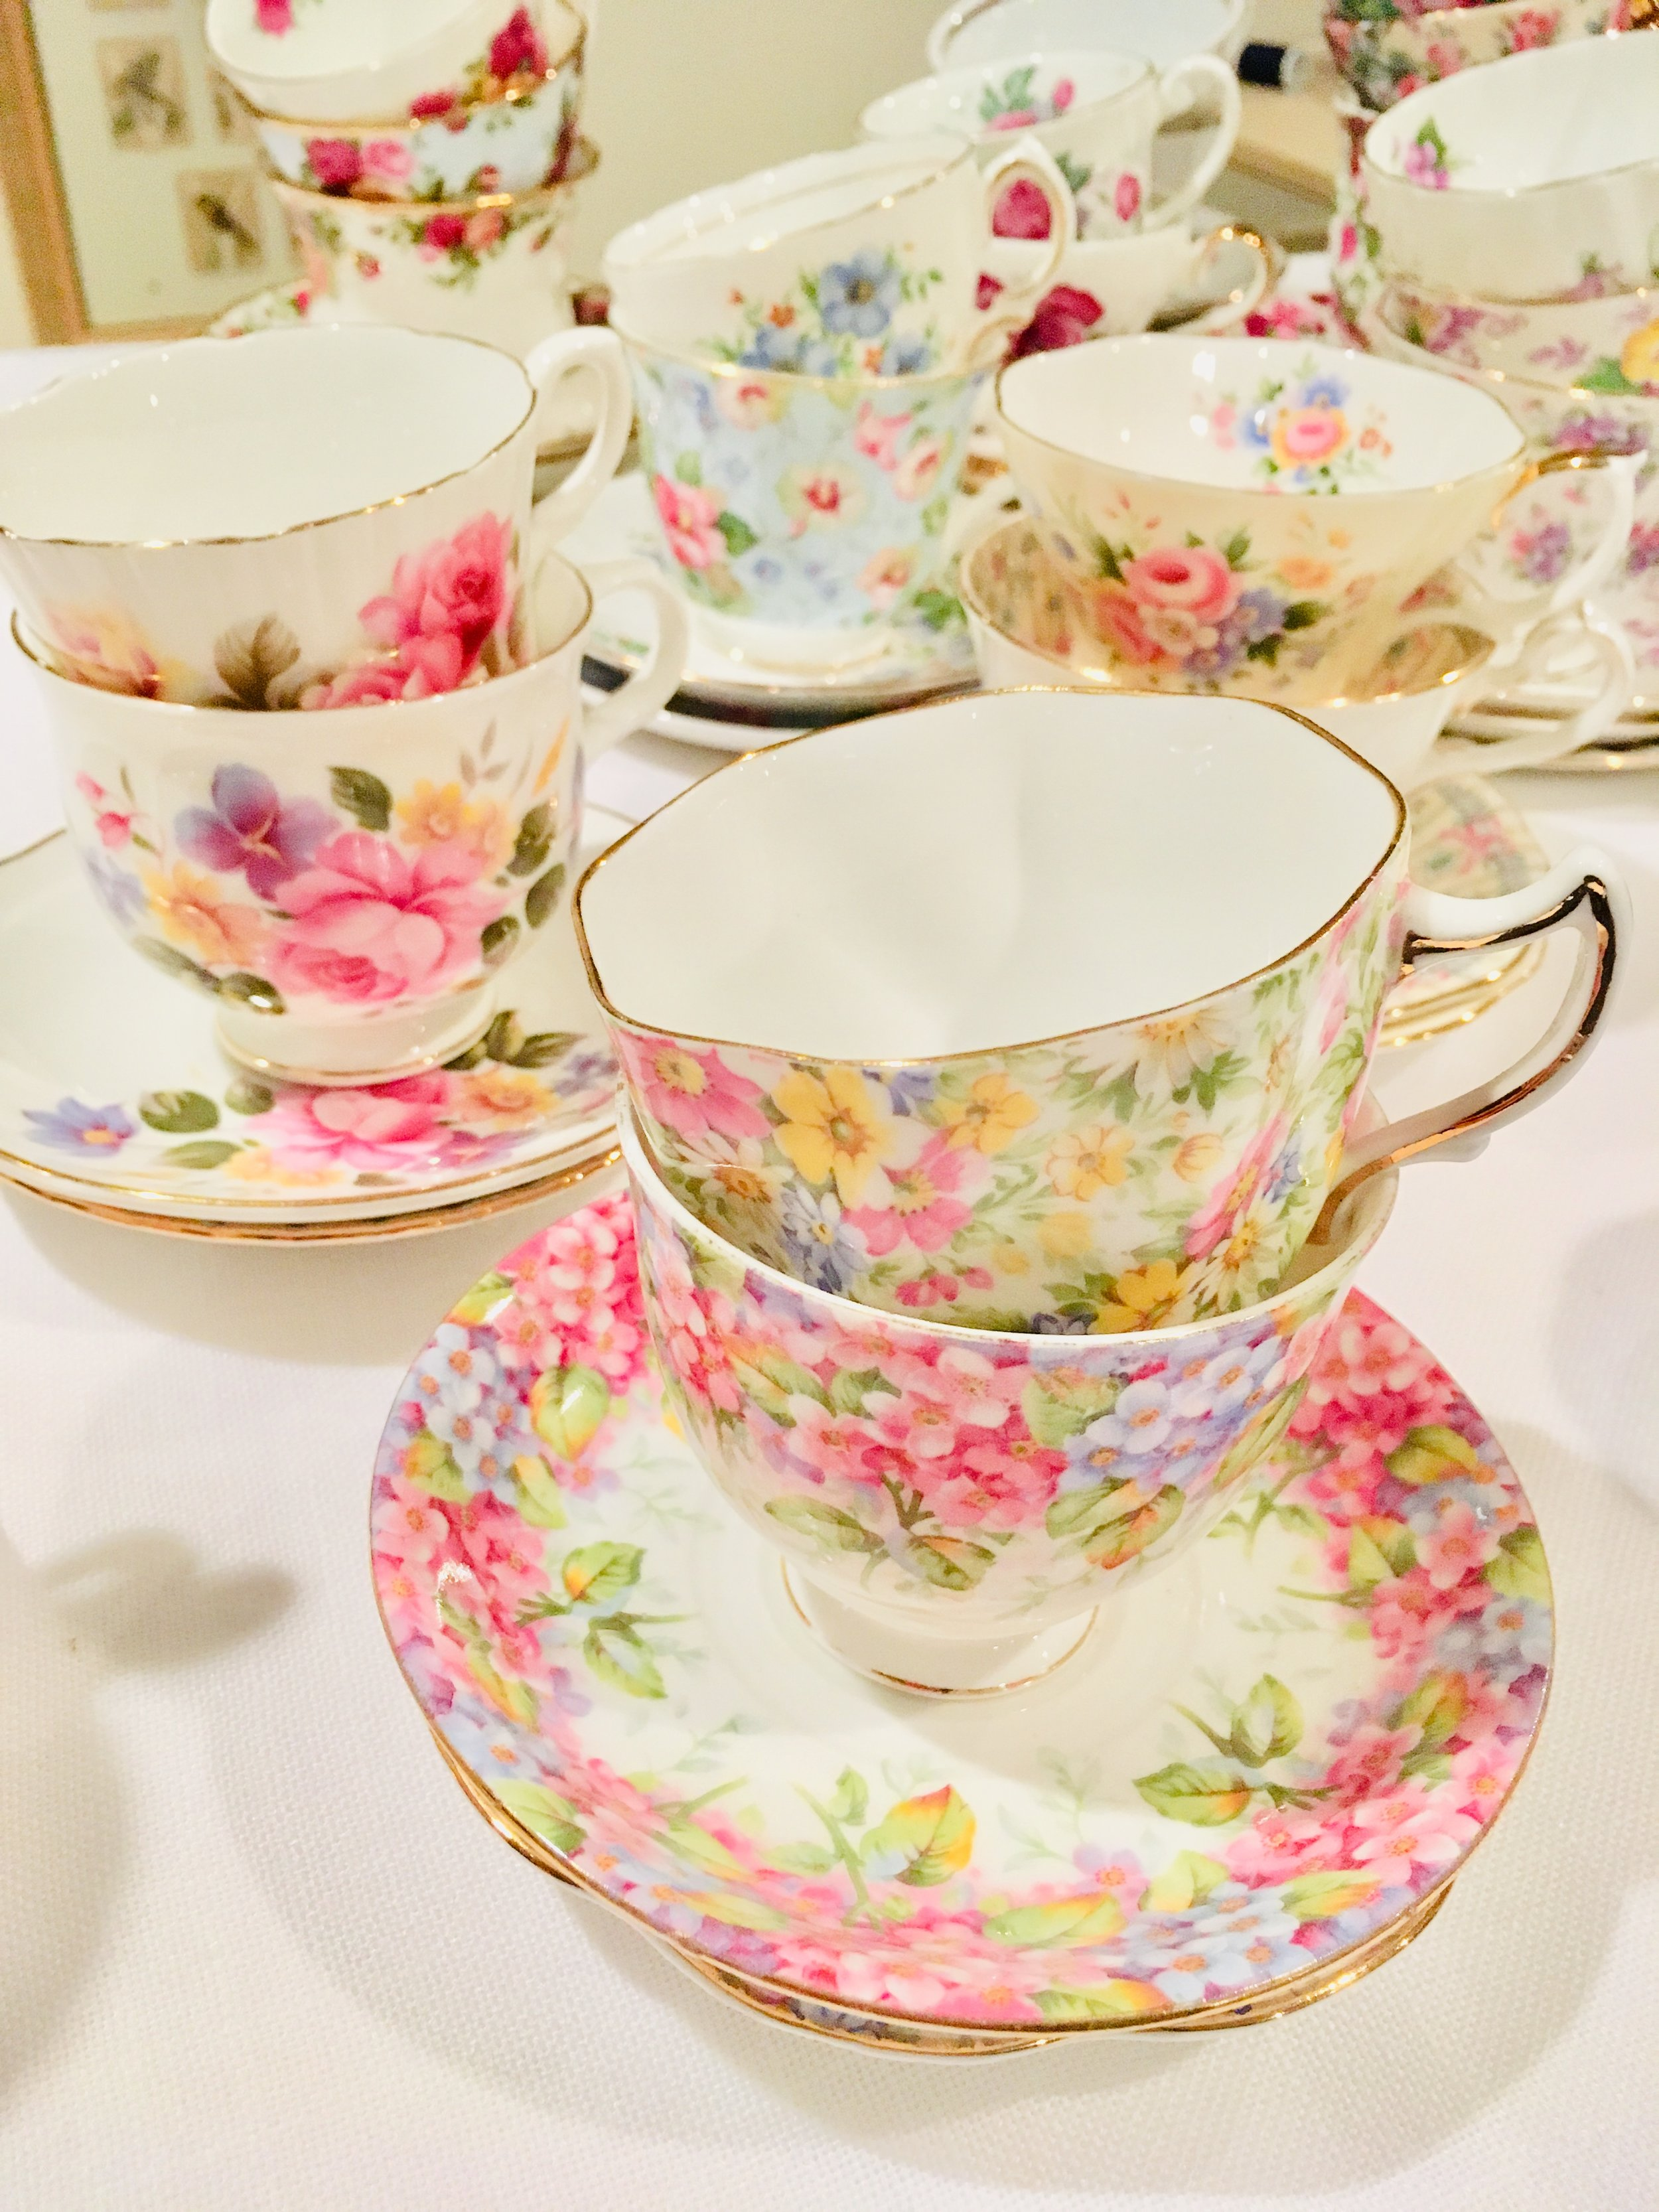 Tea parties are perfect for bridal showers, baby showers, book groups, reunions, or any time you want to celebrate a milestone such as a retirement or special birthday.